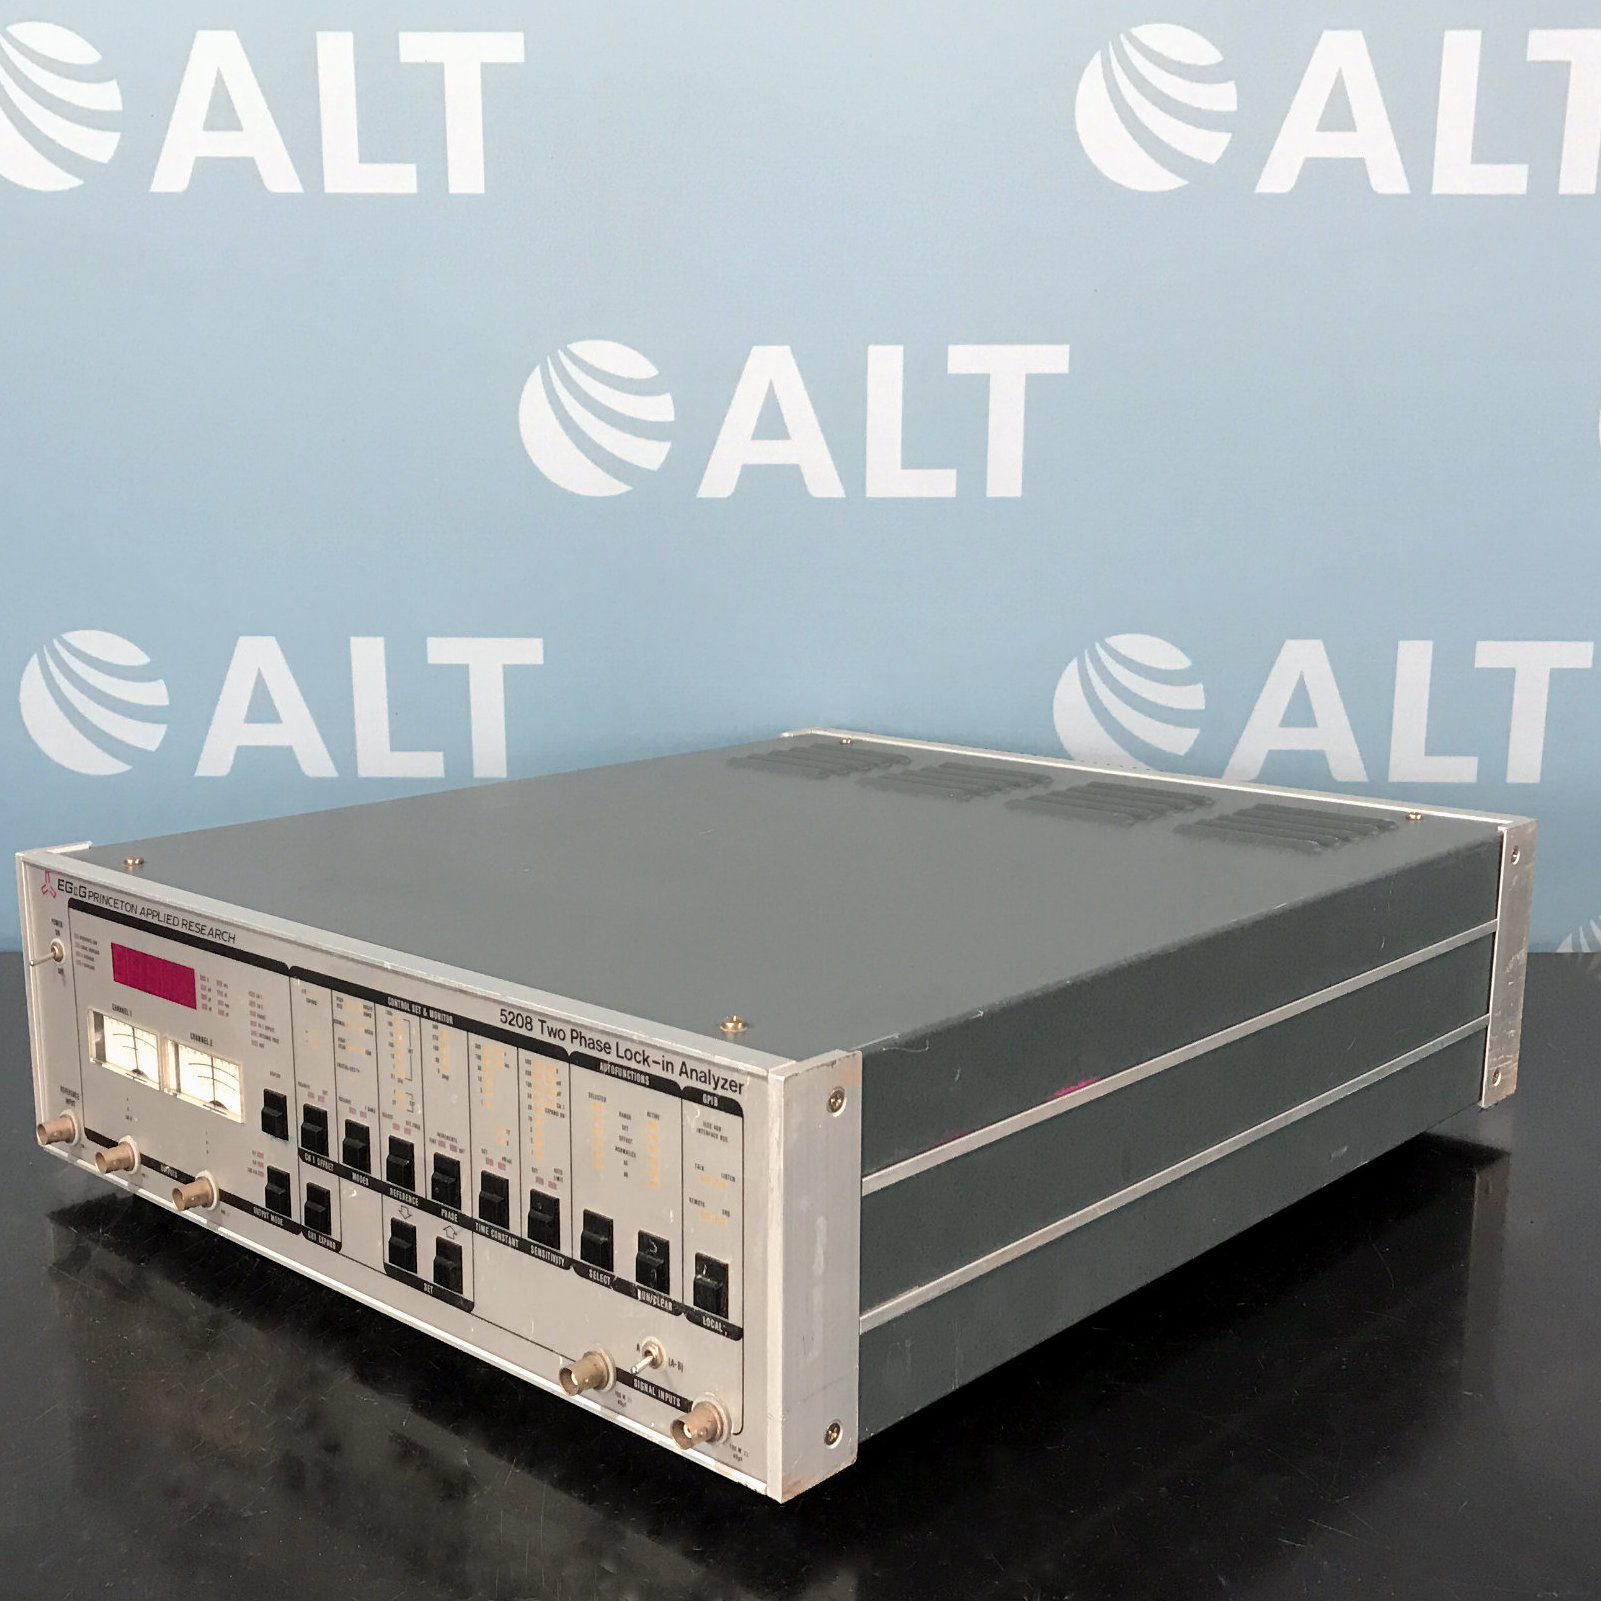 EG&G Princeton Applied Research 5208 Two Phase Lock-in Analyzer Image